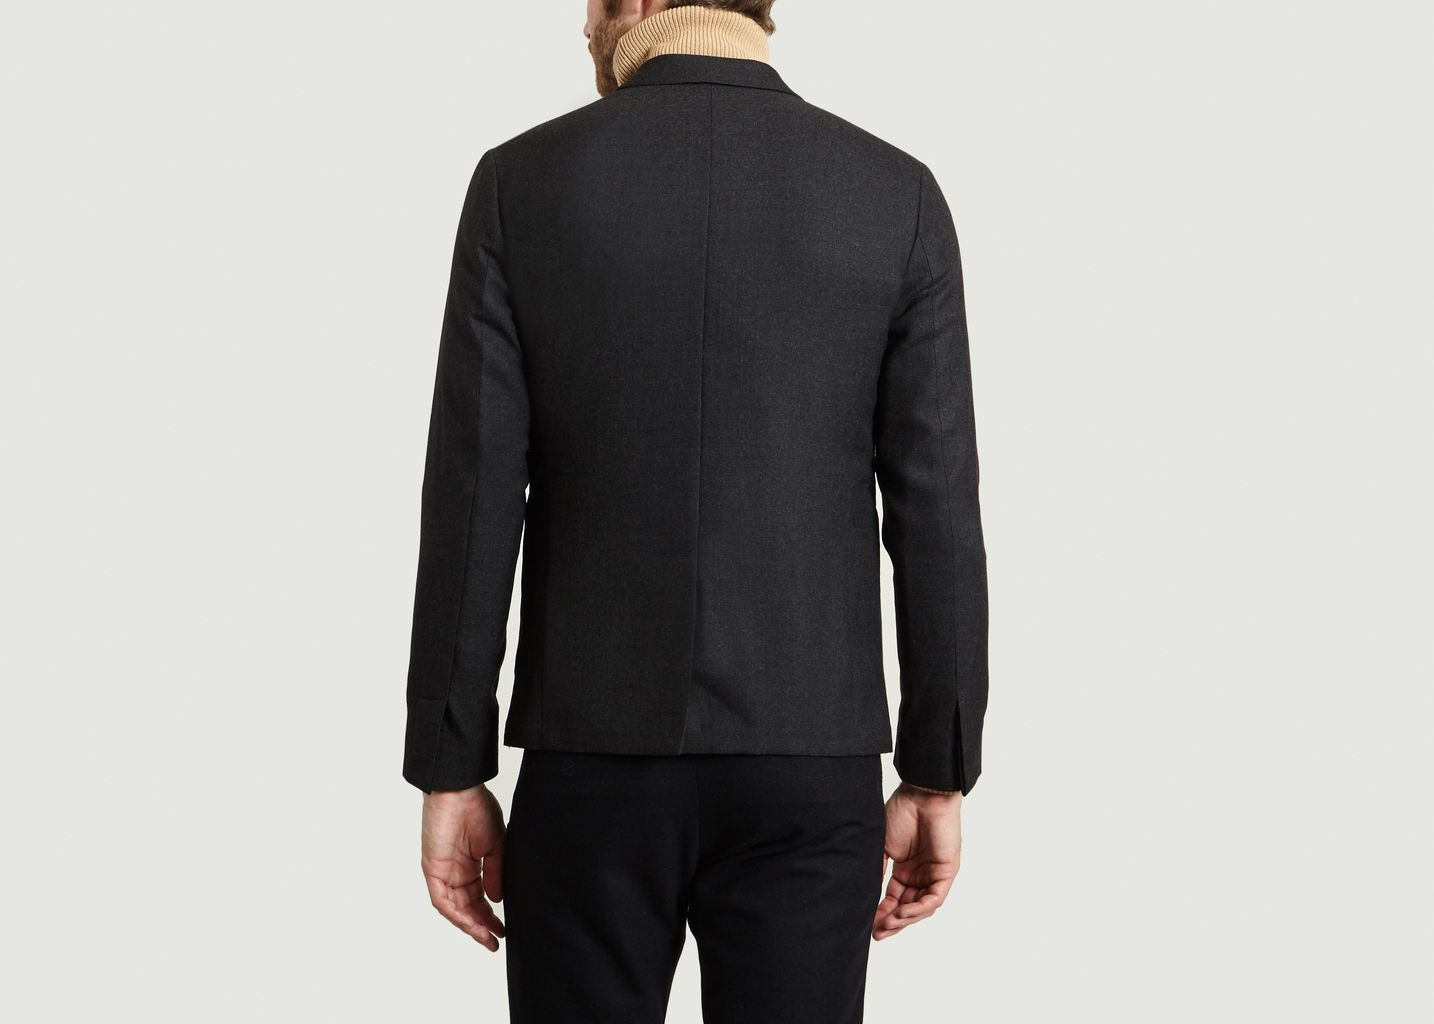 Anthracite Jacket Norse Samuel Projects L'Exception 0qn5nf8